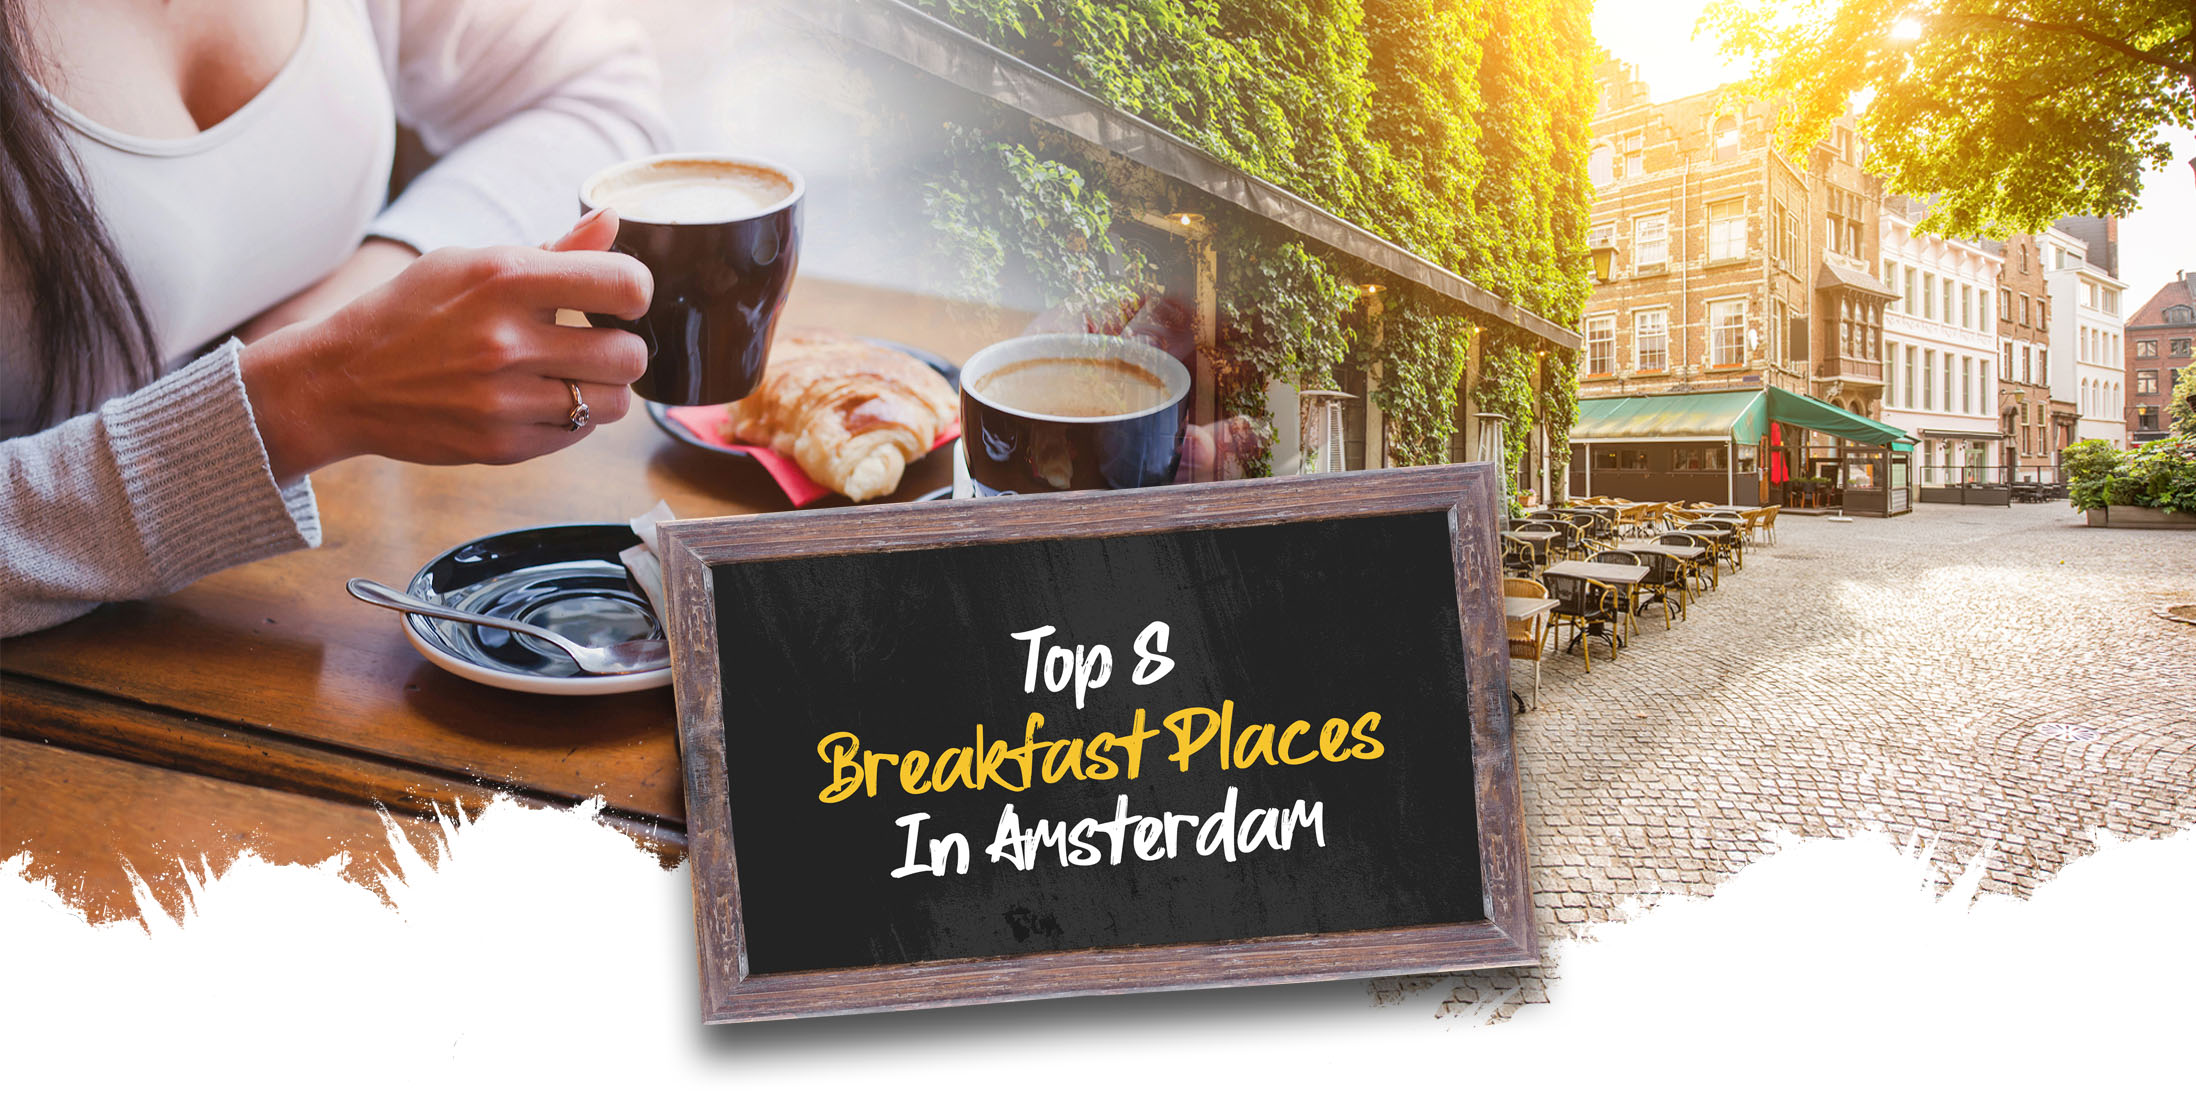 Top 8 Breakfast Places in Amsterdam